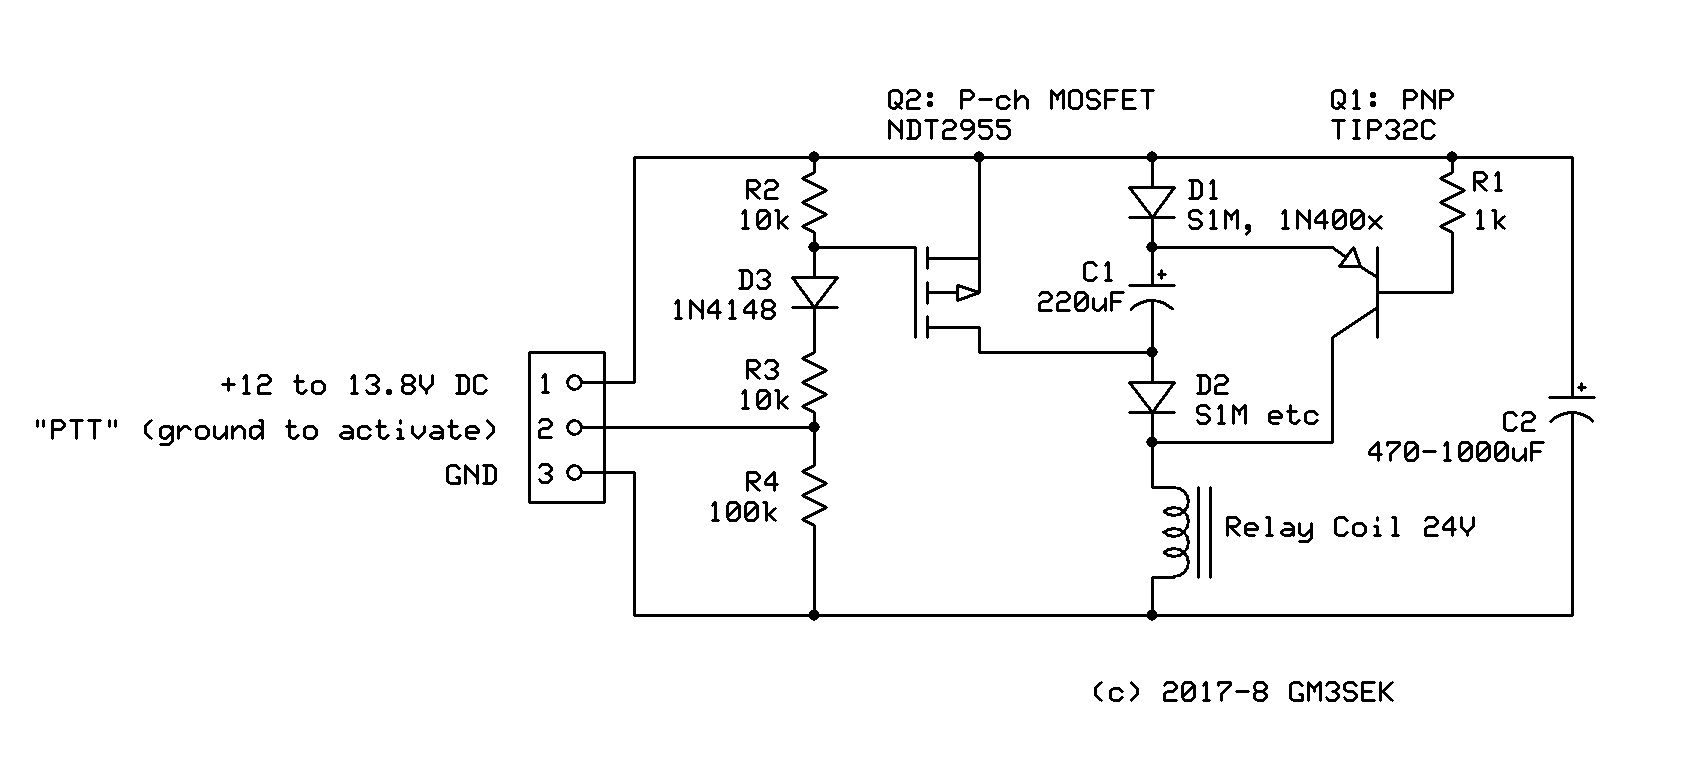 Switching 24v Relays From A 12v Dc Supply Gm3seks Technical Blog Relay Switch Meaning We Can Now Control The Directly Gate Of Q2 So Fig2 Is Simplified To Just Two Transistors And Handful Other Components